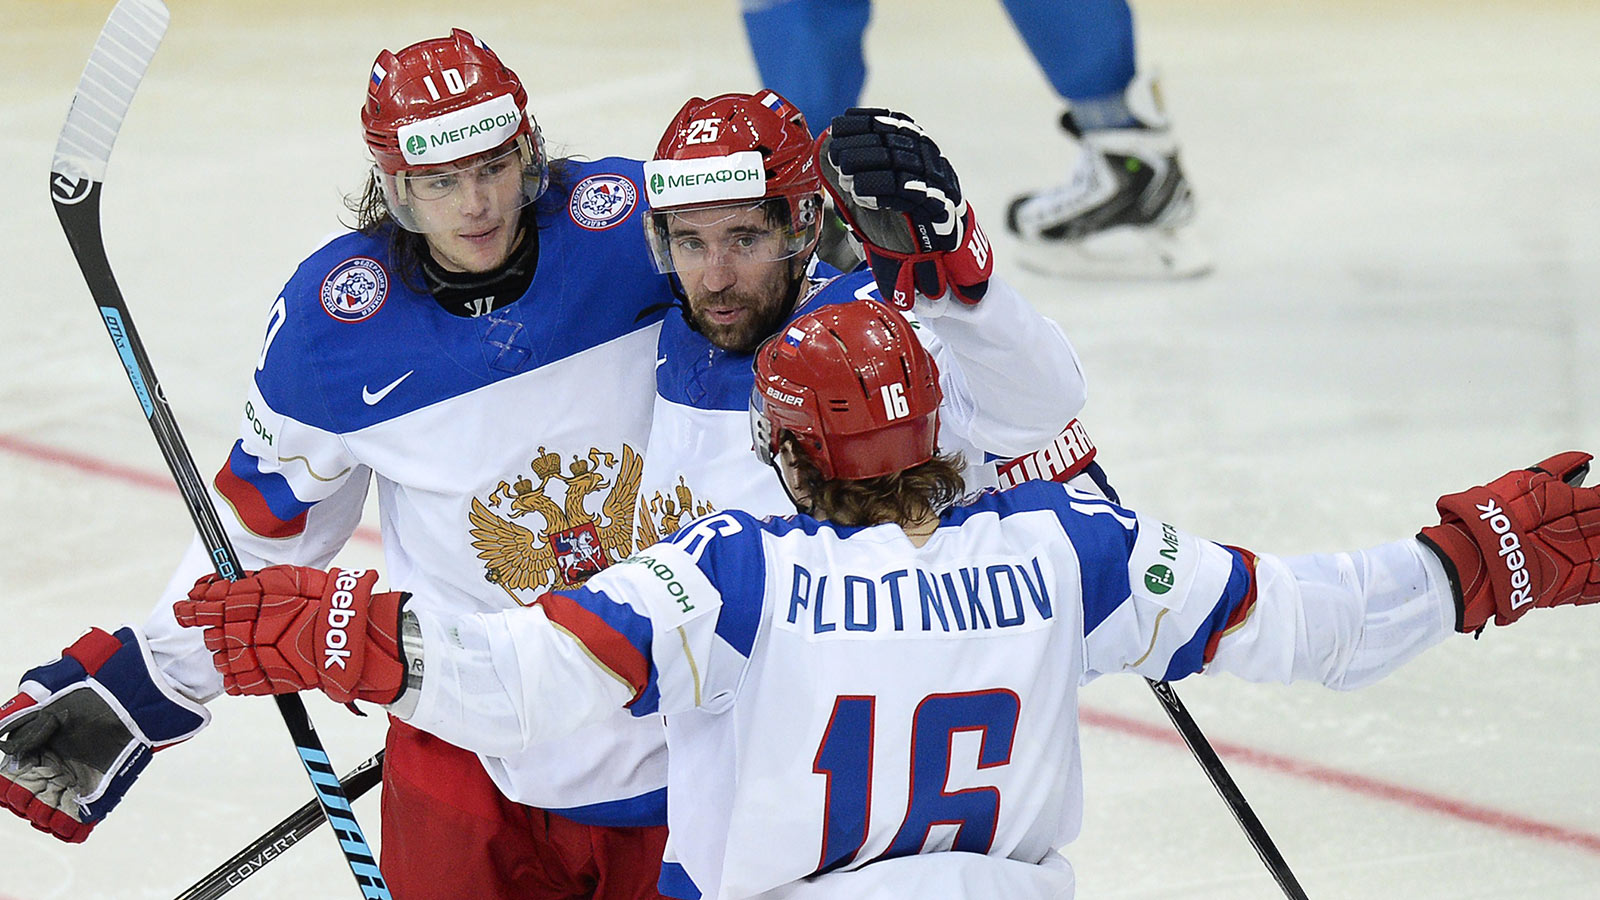 IHOCKEY-WORLD-RUS-KAZ